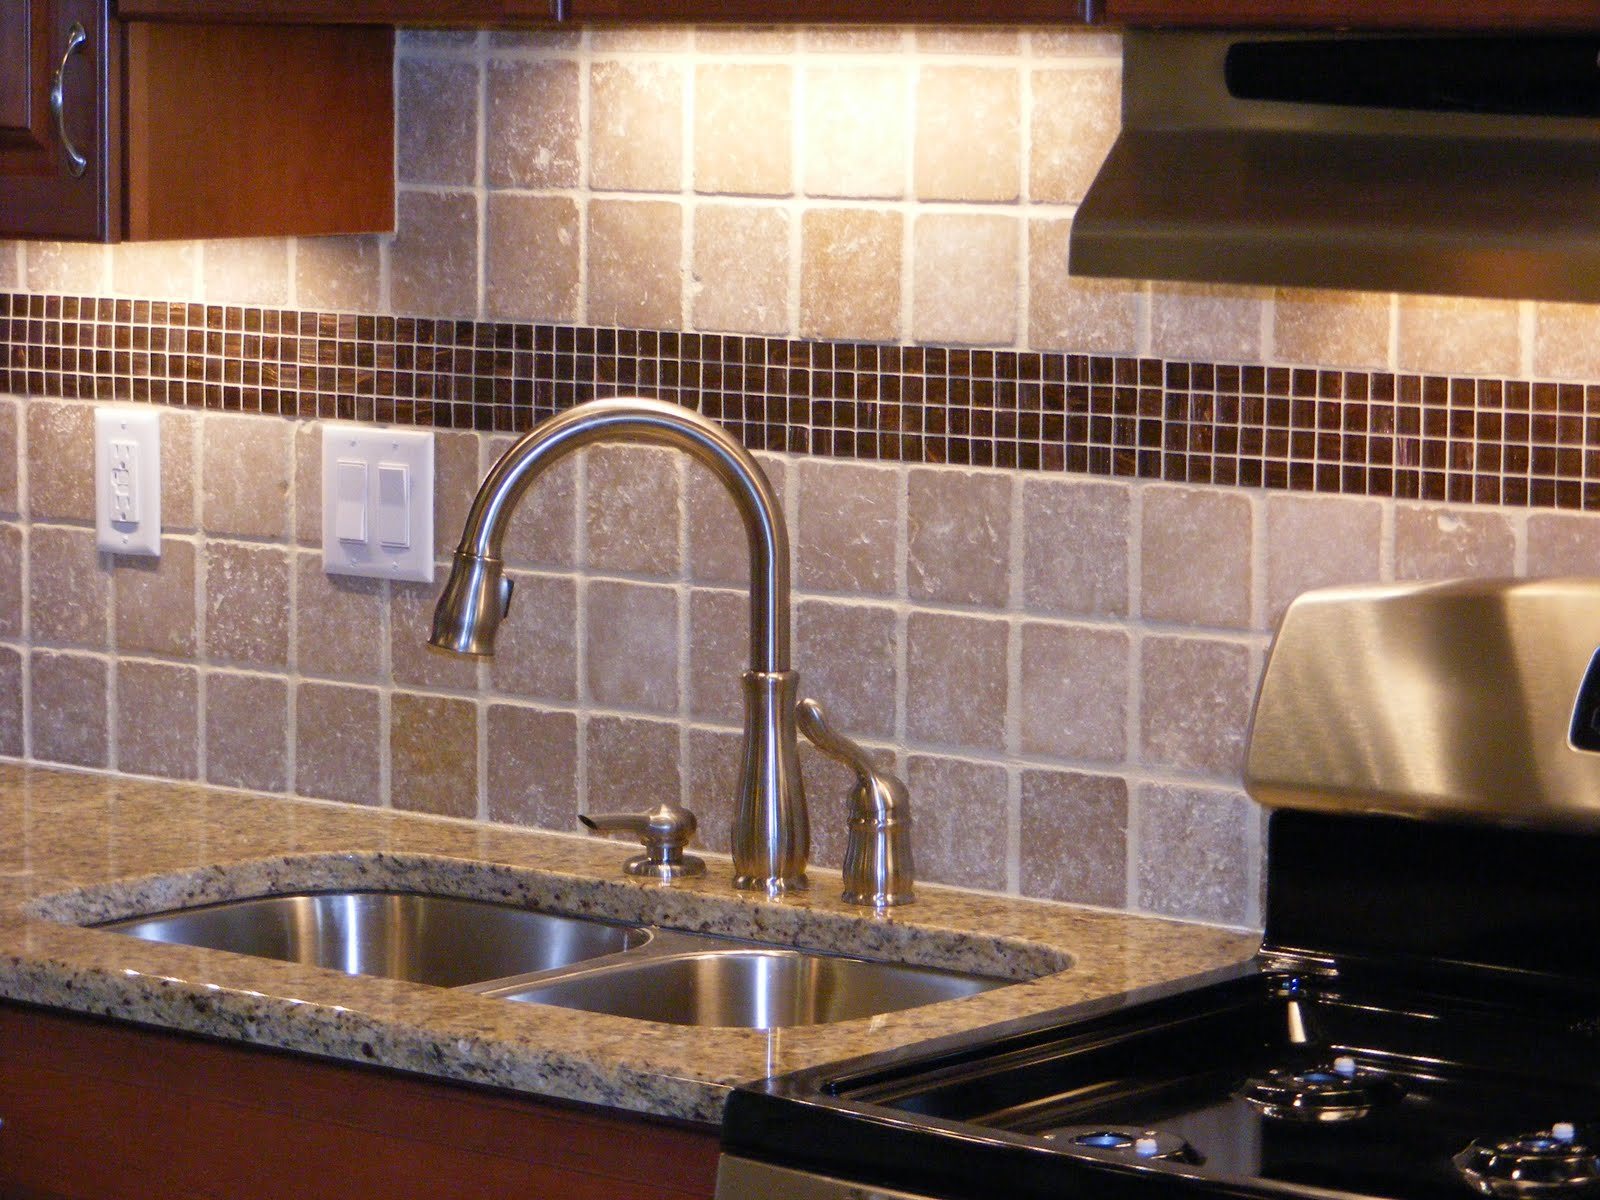 Stainless steel sink with